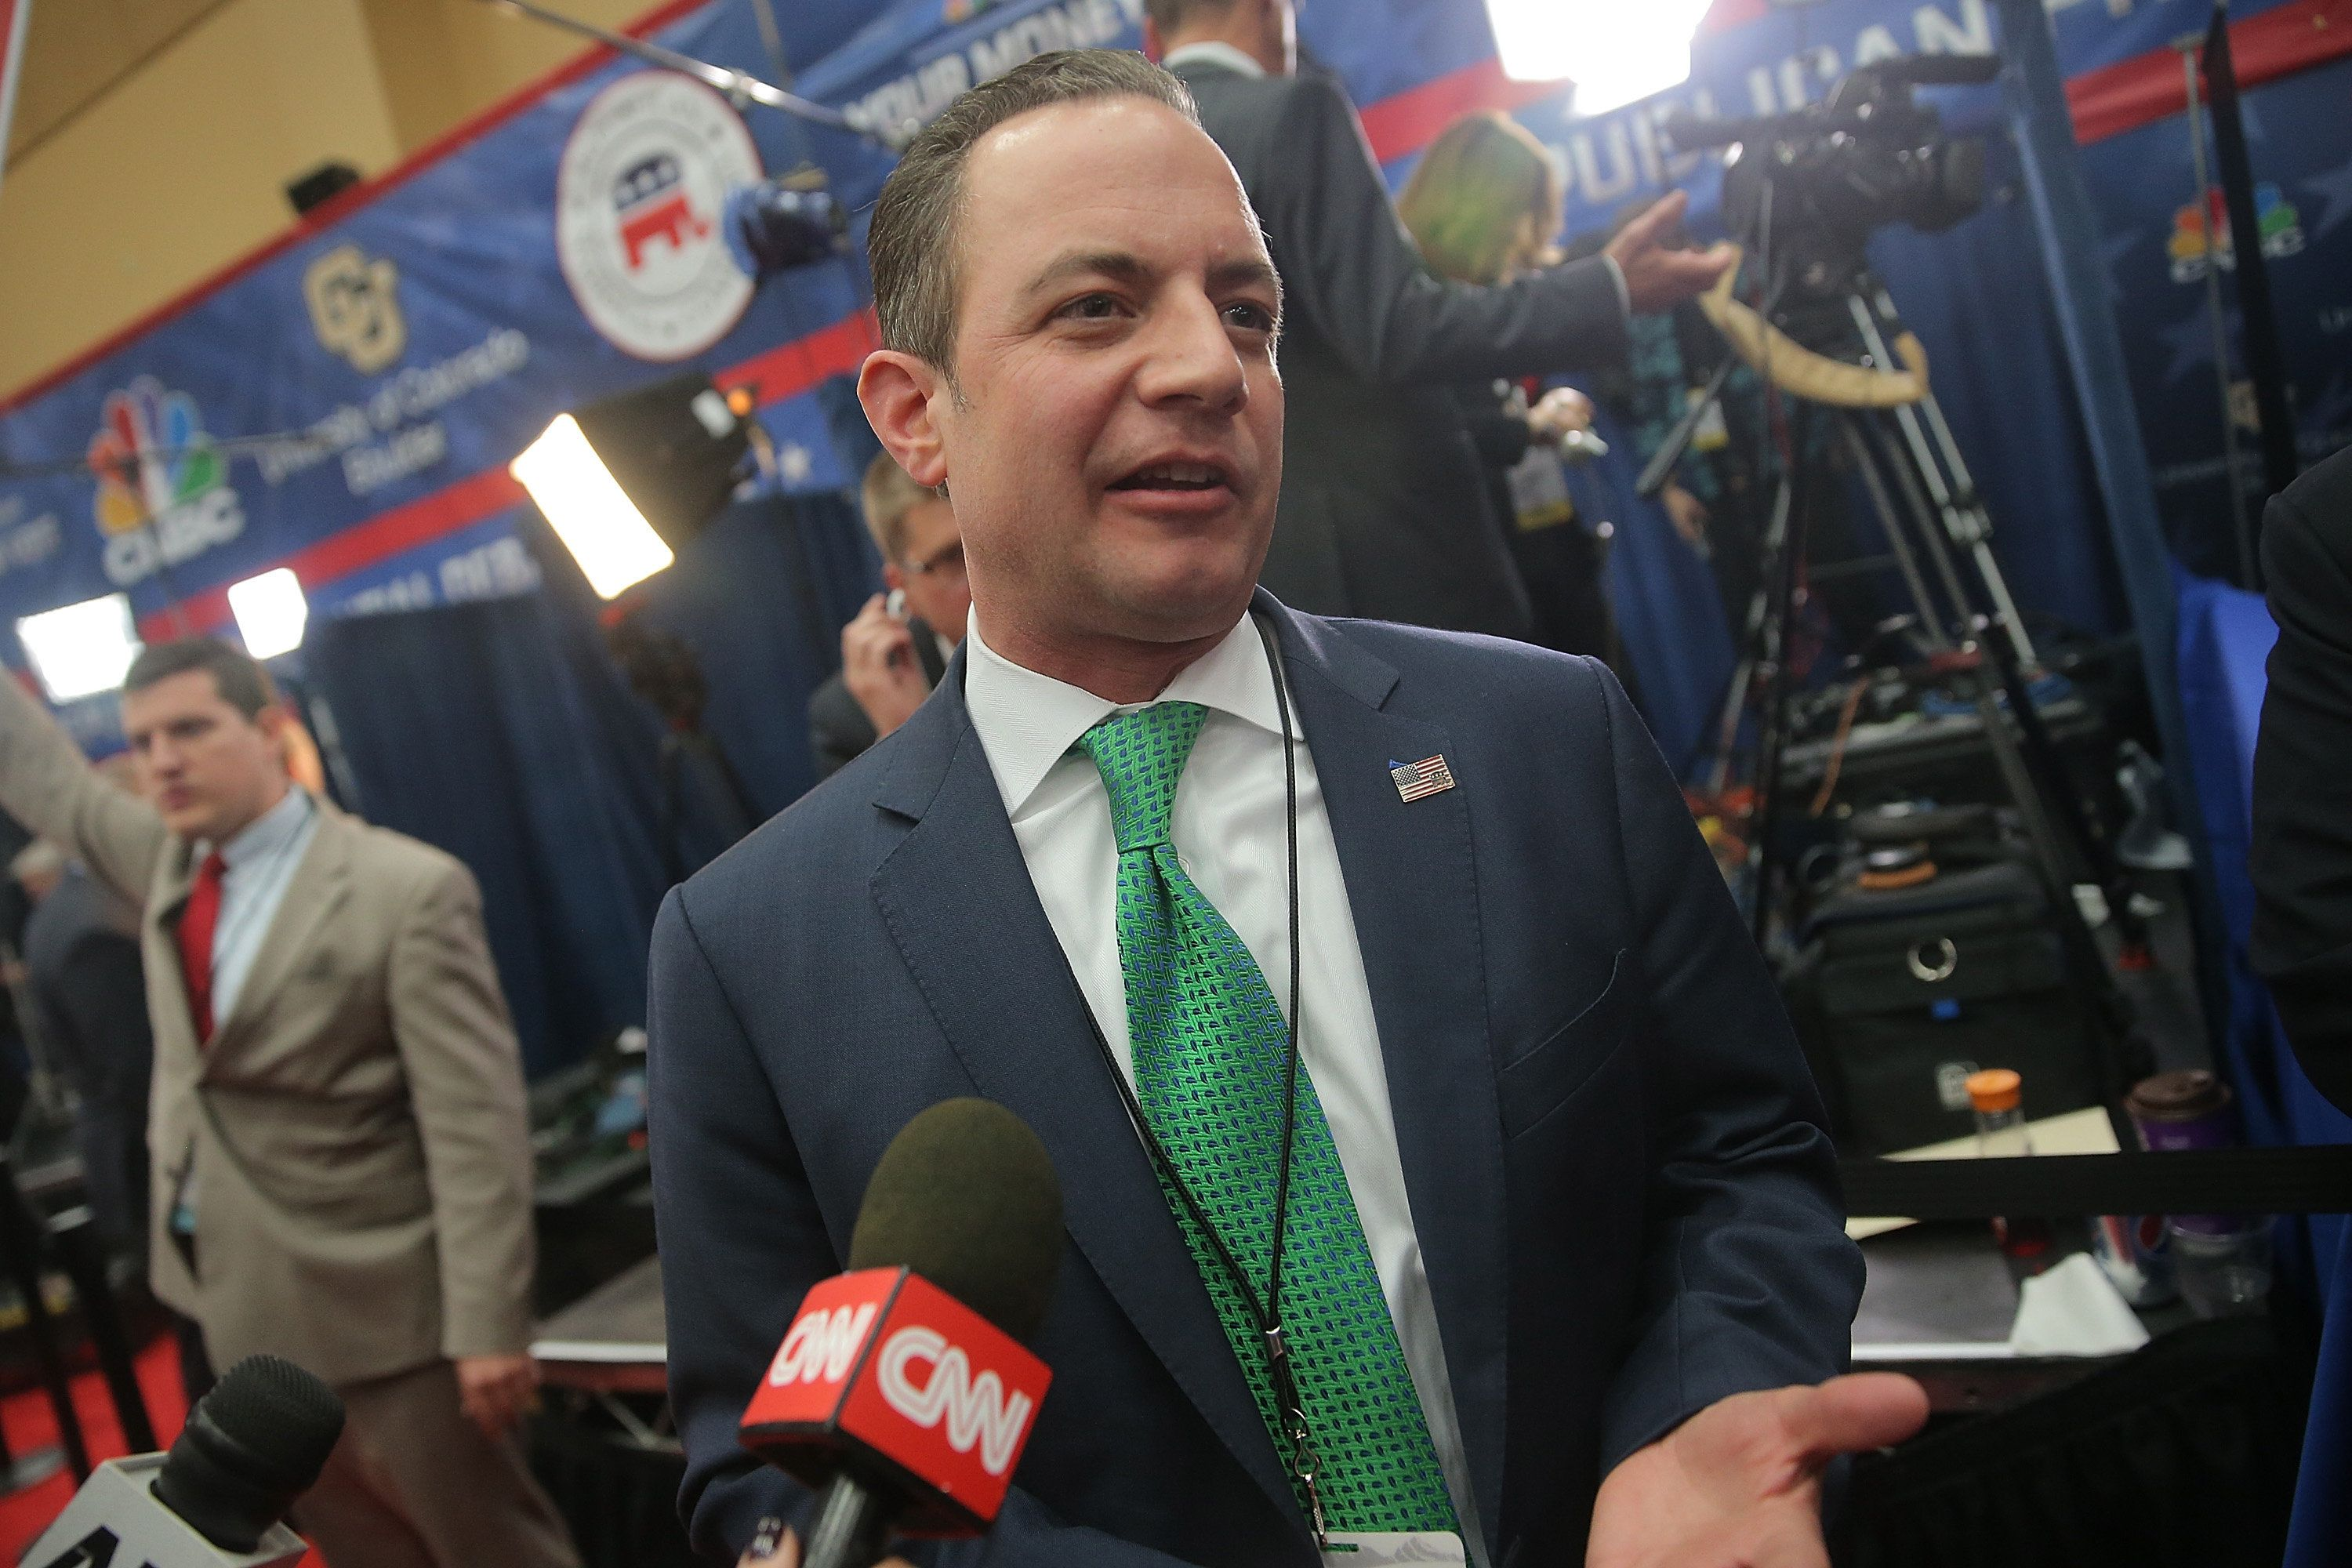 BOULDER, CO - OCTOBER 28:  Reince Priebus, chairman of the Republican National Committee, speaks to the media in the spin room after the CNBC Republican Presidential Debate at University of Colorado's Coors Events Center October 28, 2015 in Boulder, Colorado.  Fourteen Republican presidential candidates participated in the third set of Republican presidential debates.  (Photo by Andrew Burton/Getty Images)